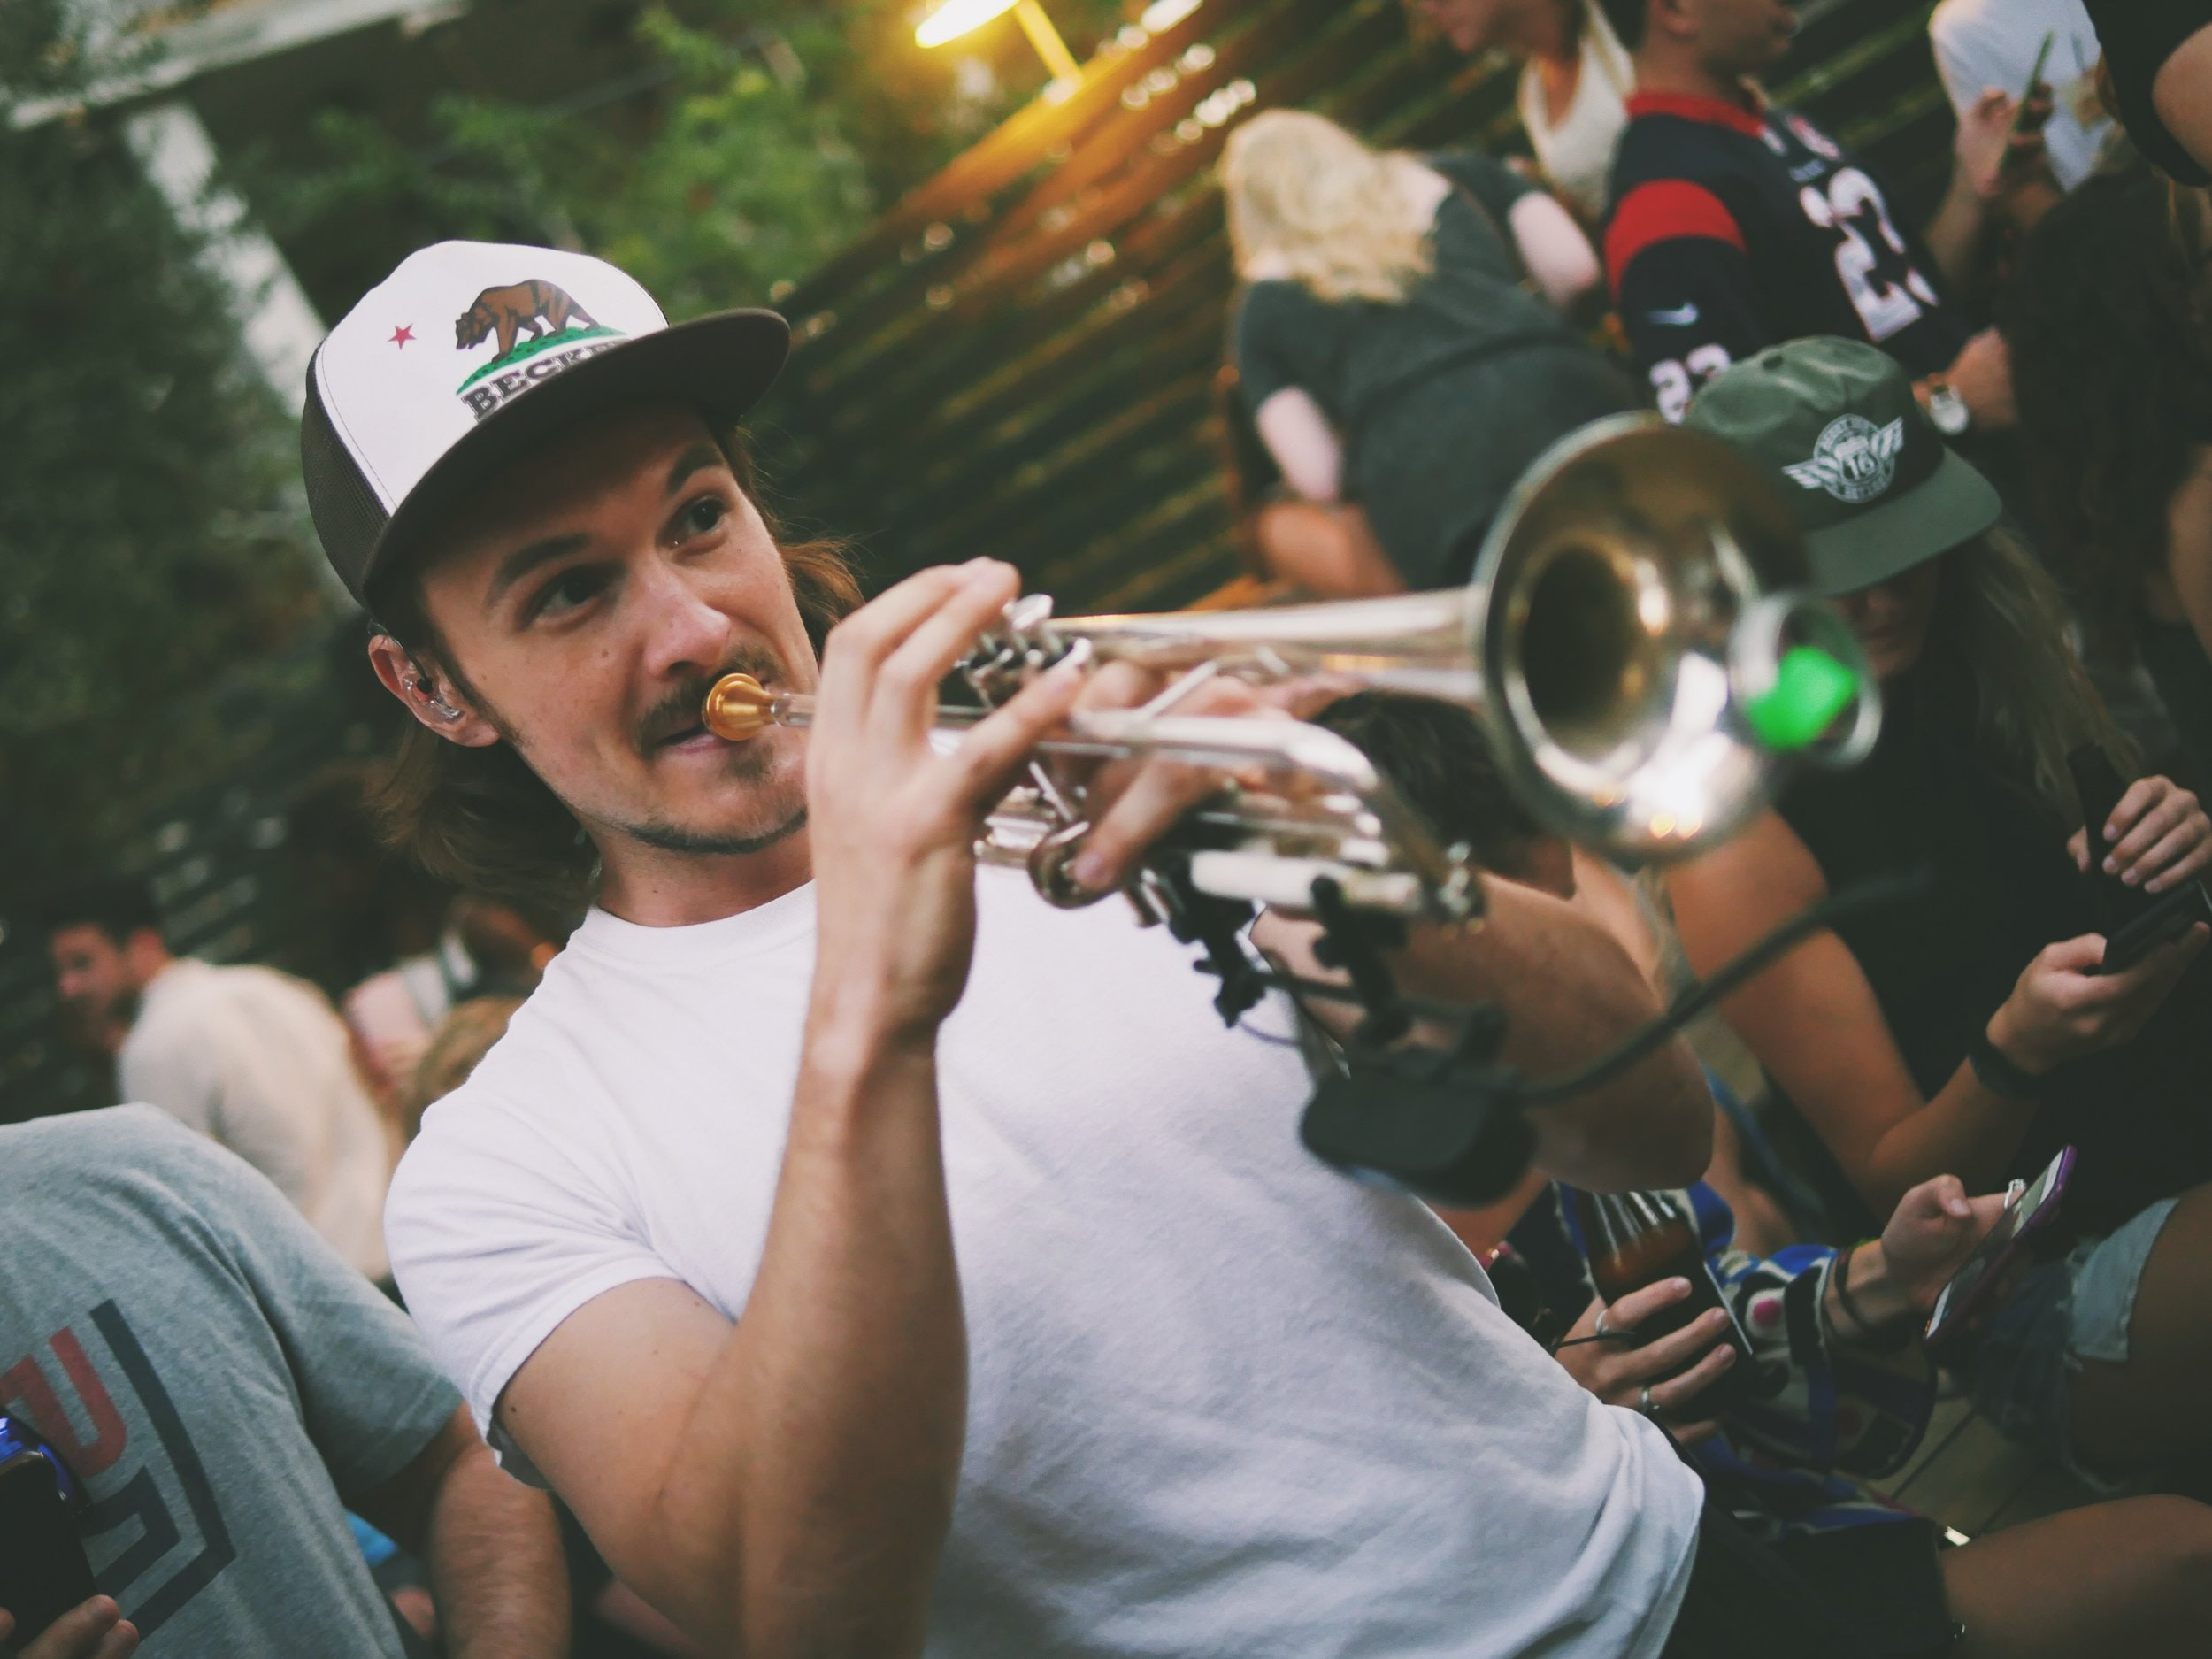 A man in a hat playing a trumpet in a crowd of people outdoors